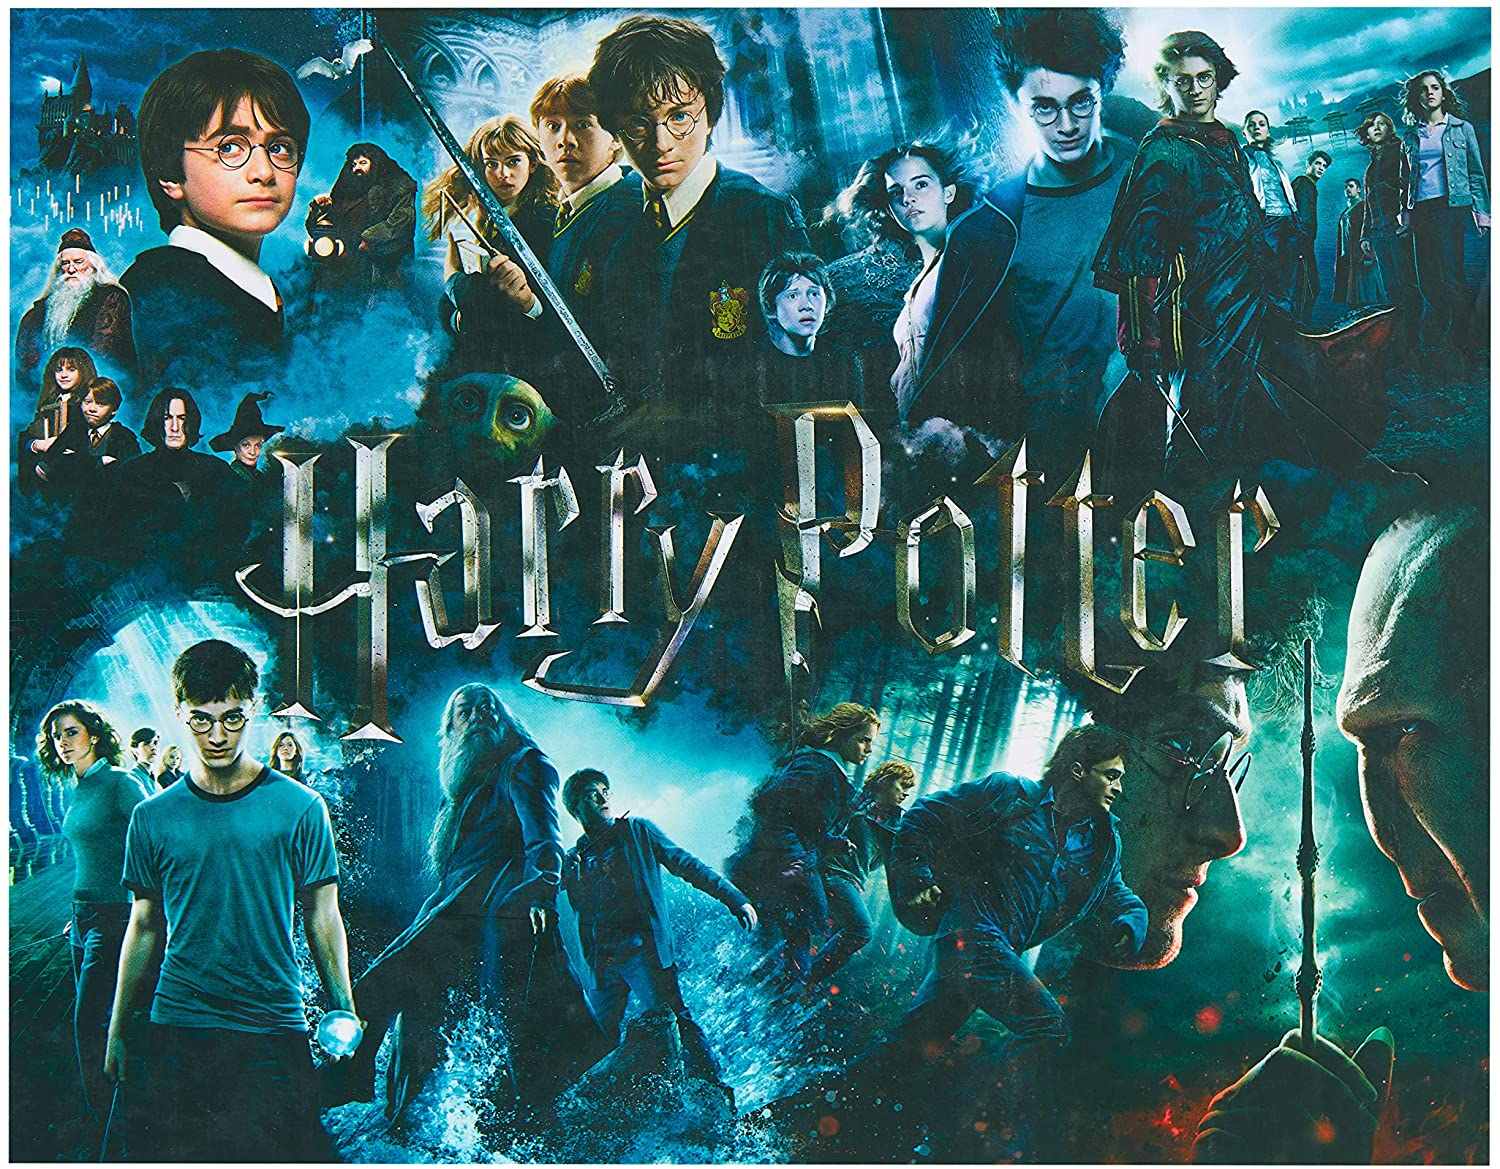 Harry Potter 1000 Piece Jigsaw Puzzle - 30in x 24in - Officially Licensed Merchandise